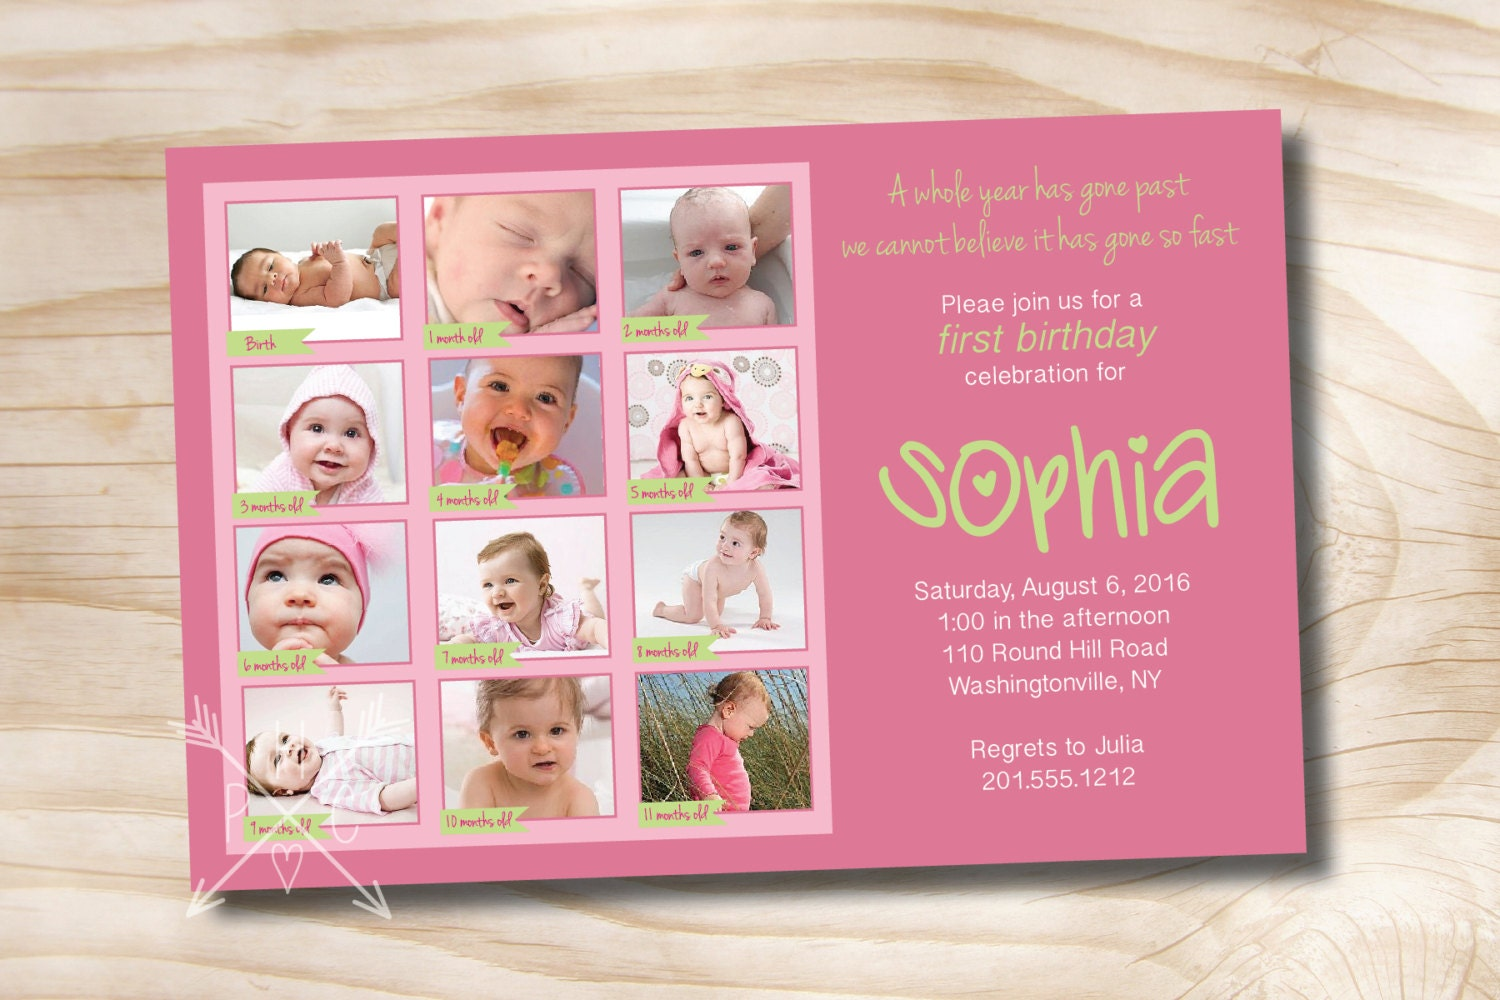 invitation words forst birthday party%0A words for first birthday invitation cards First birthday photo montage birthday  party event printable zoom kristyandbryce